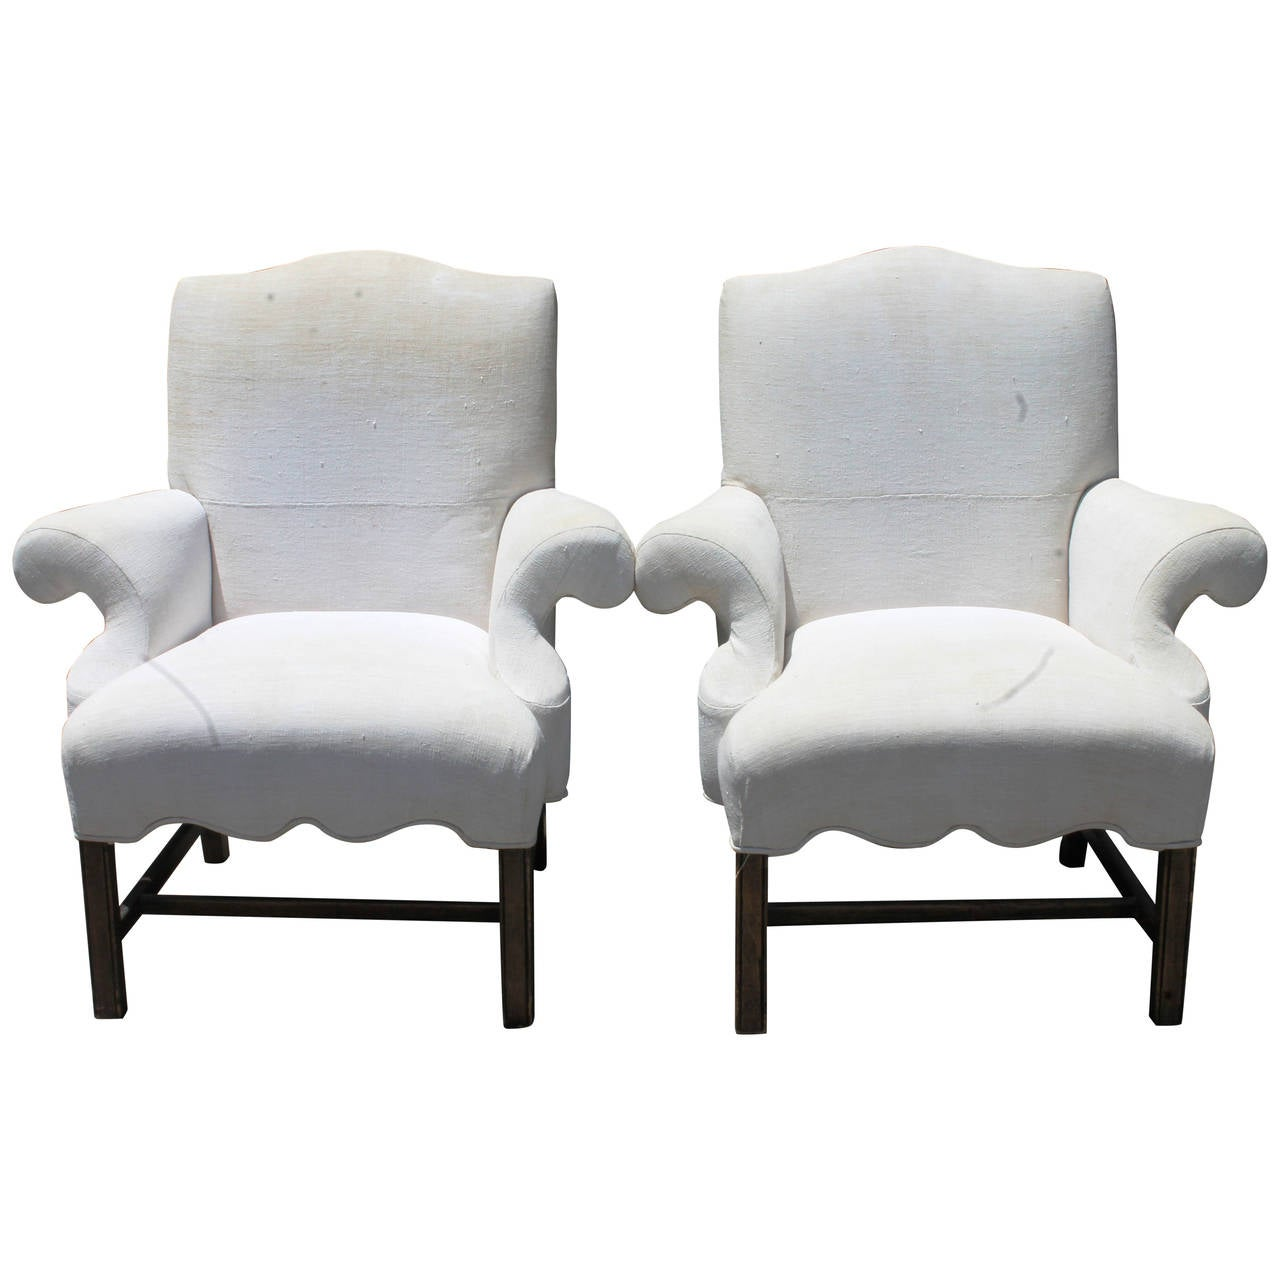 Decorative Arm Chairs ~ Pair of decorative chippendale arm chairs upholstered in